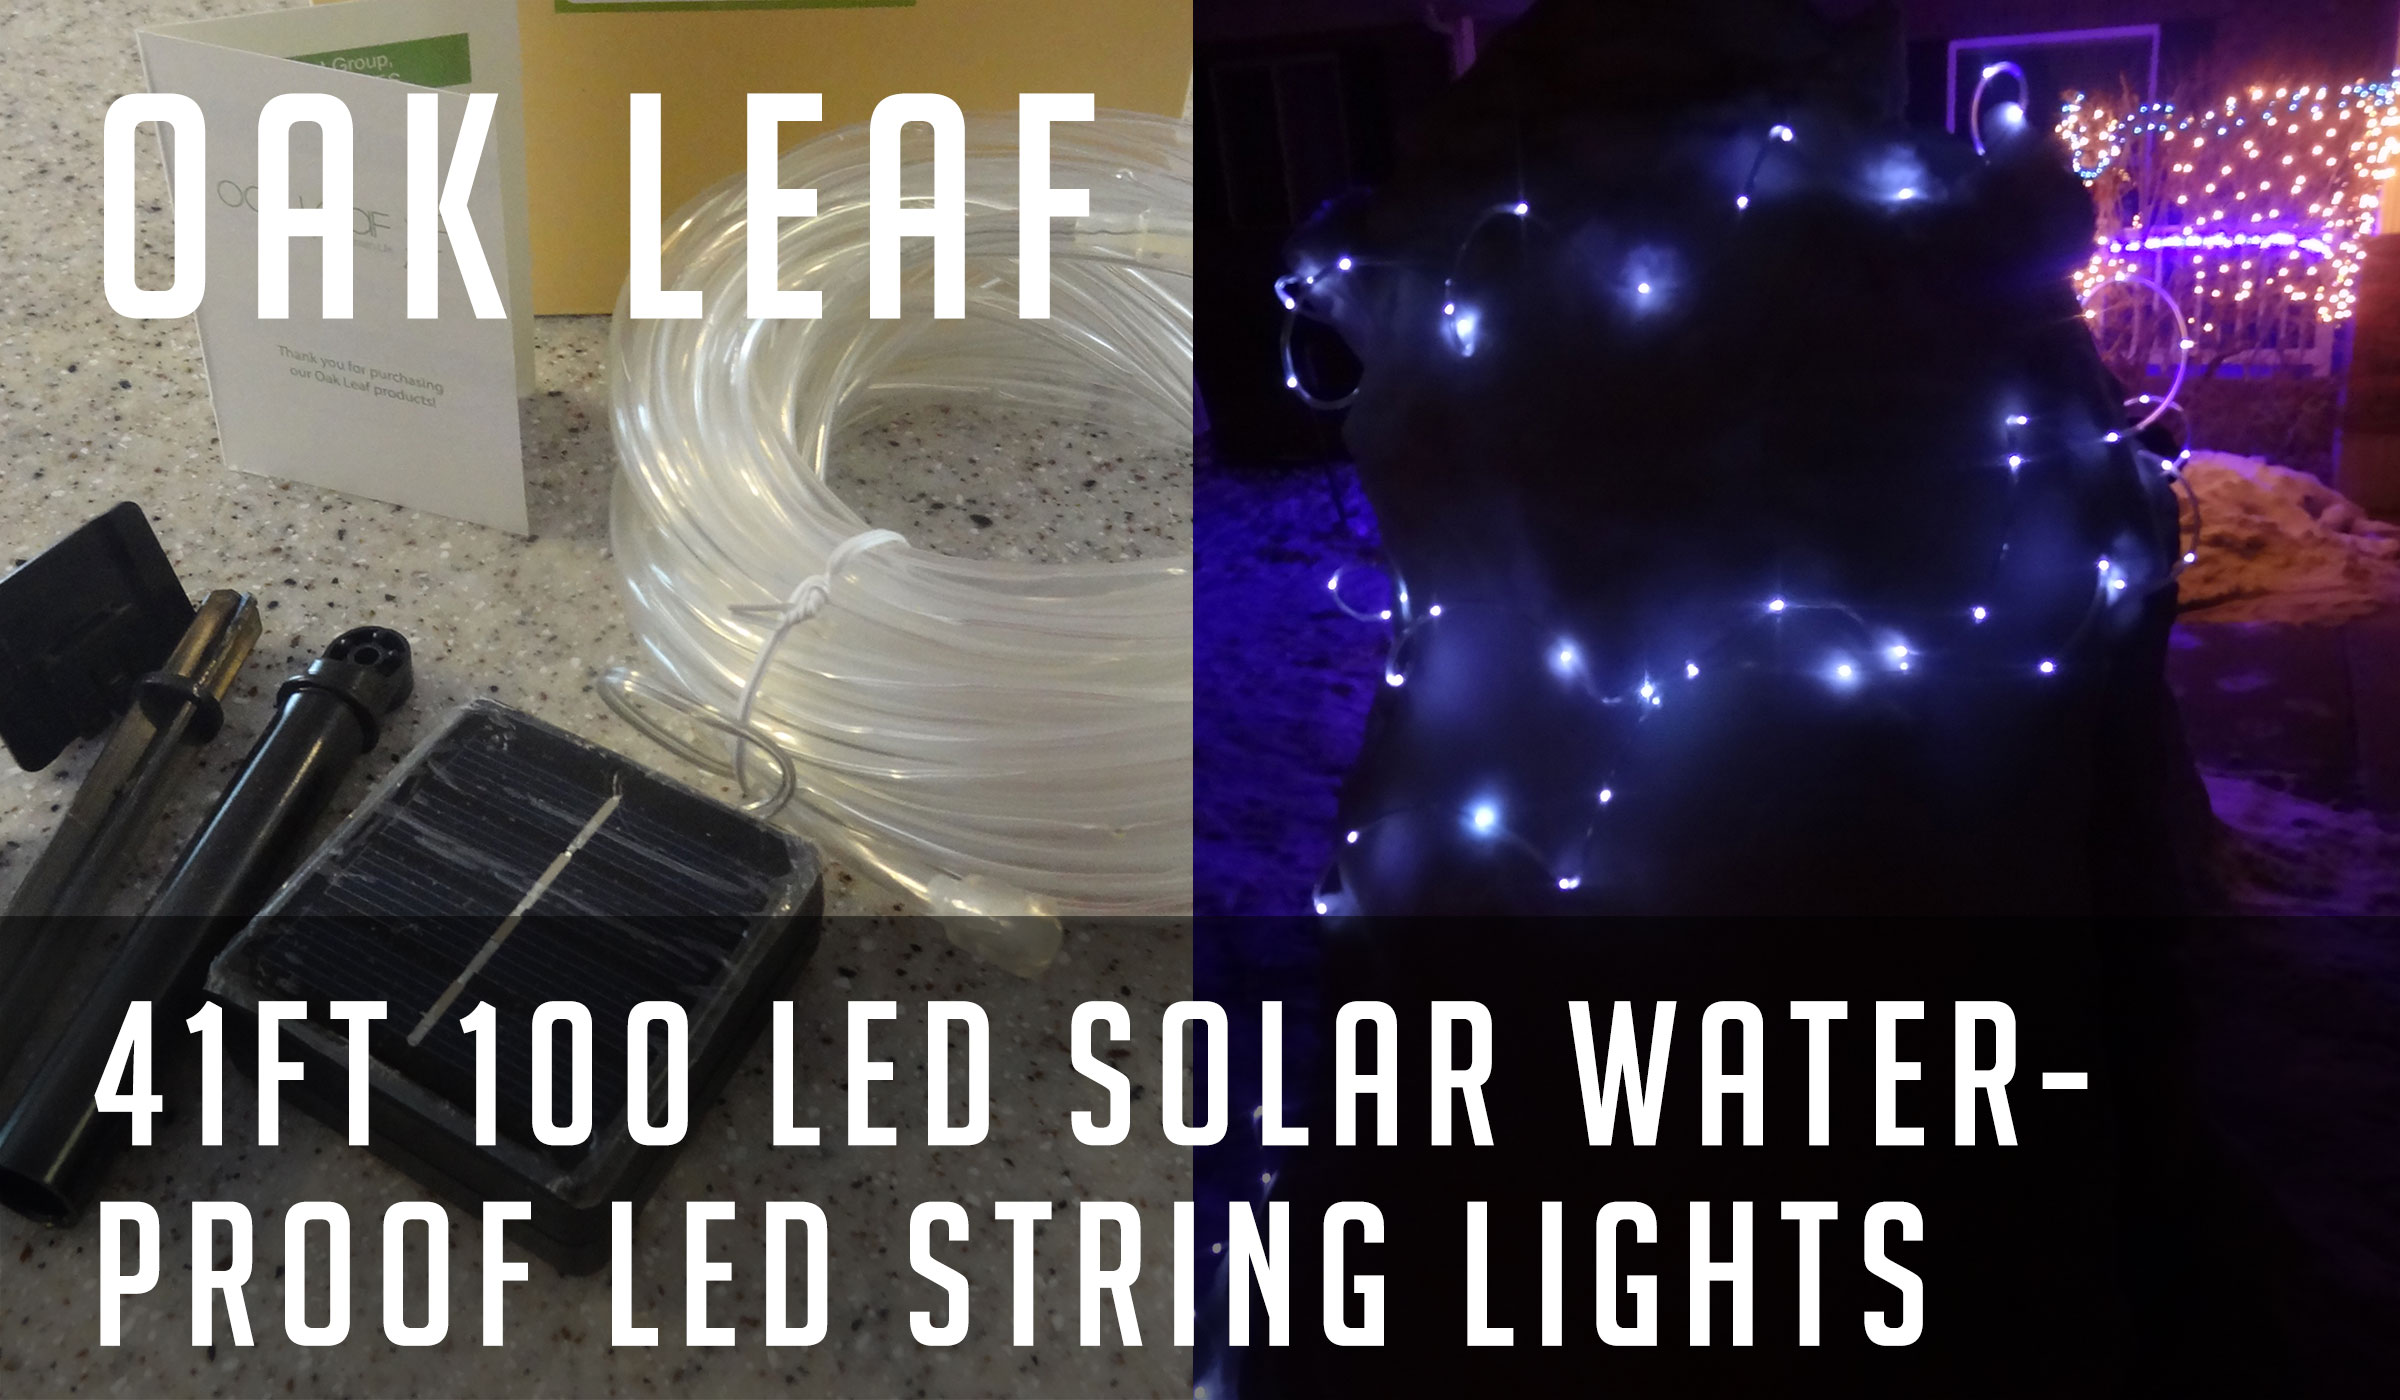 Led Lights Half String Out : Review: Oak Leaf Christmas 41ft 100 LED Solar Waterproof LED String Light ? Reviews of Cool Stuff